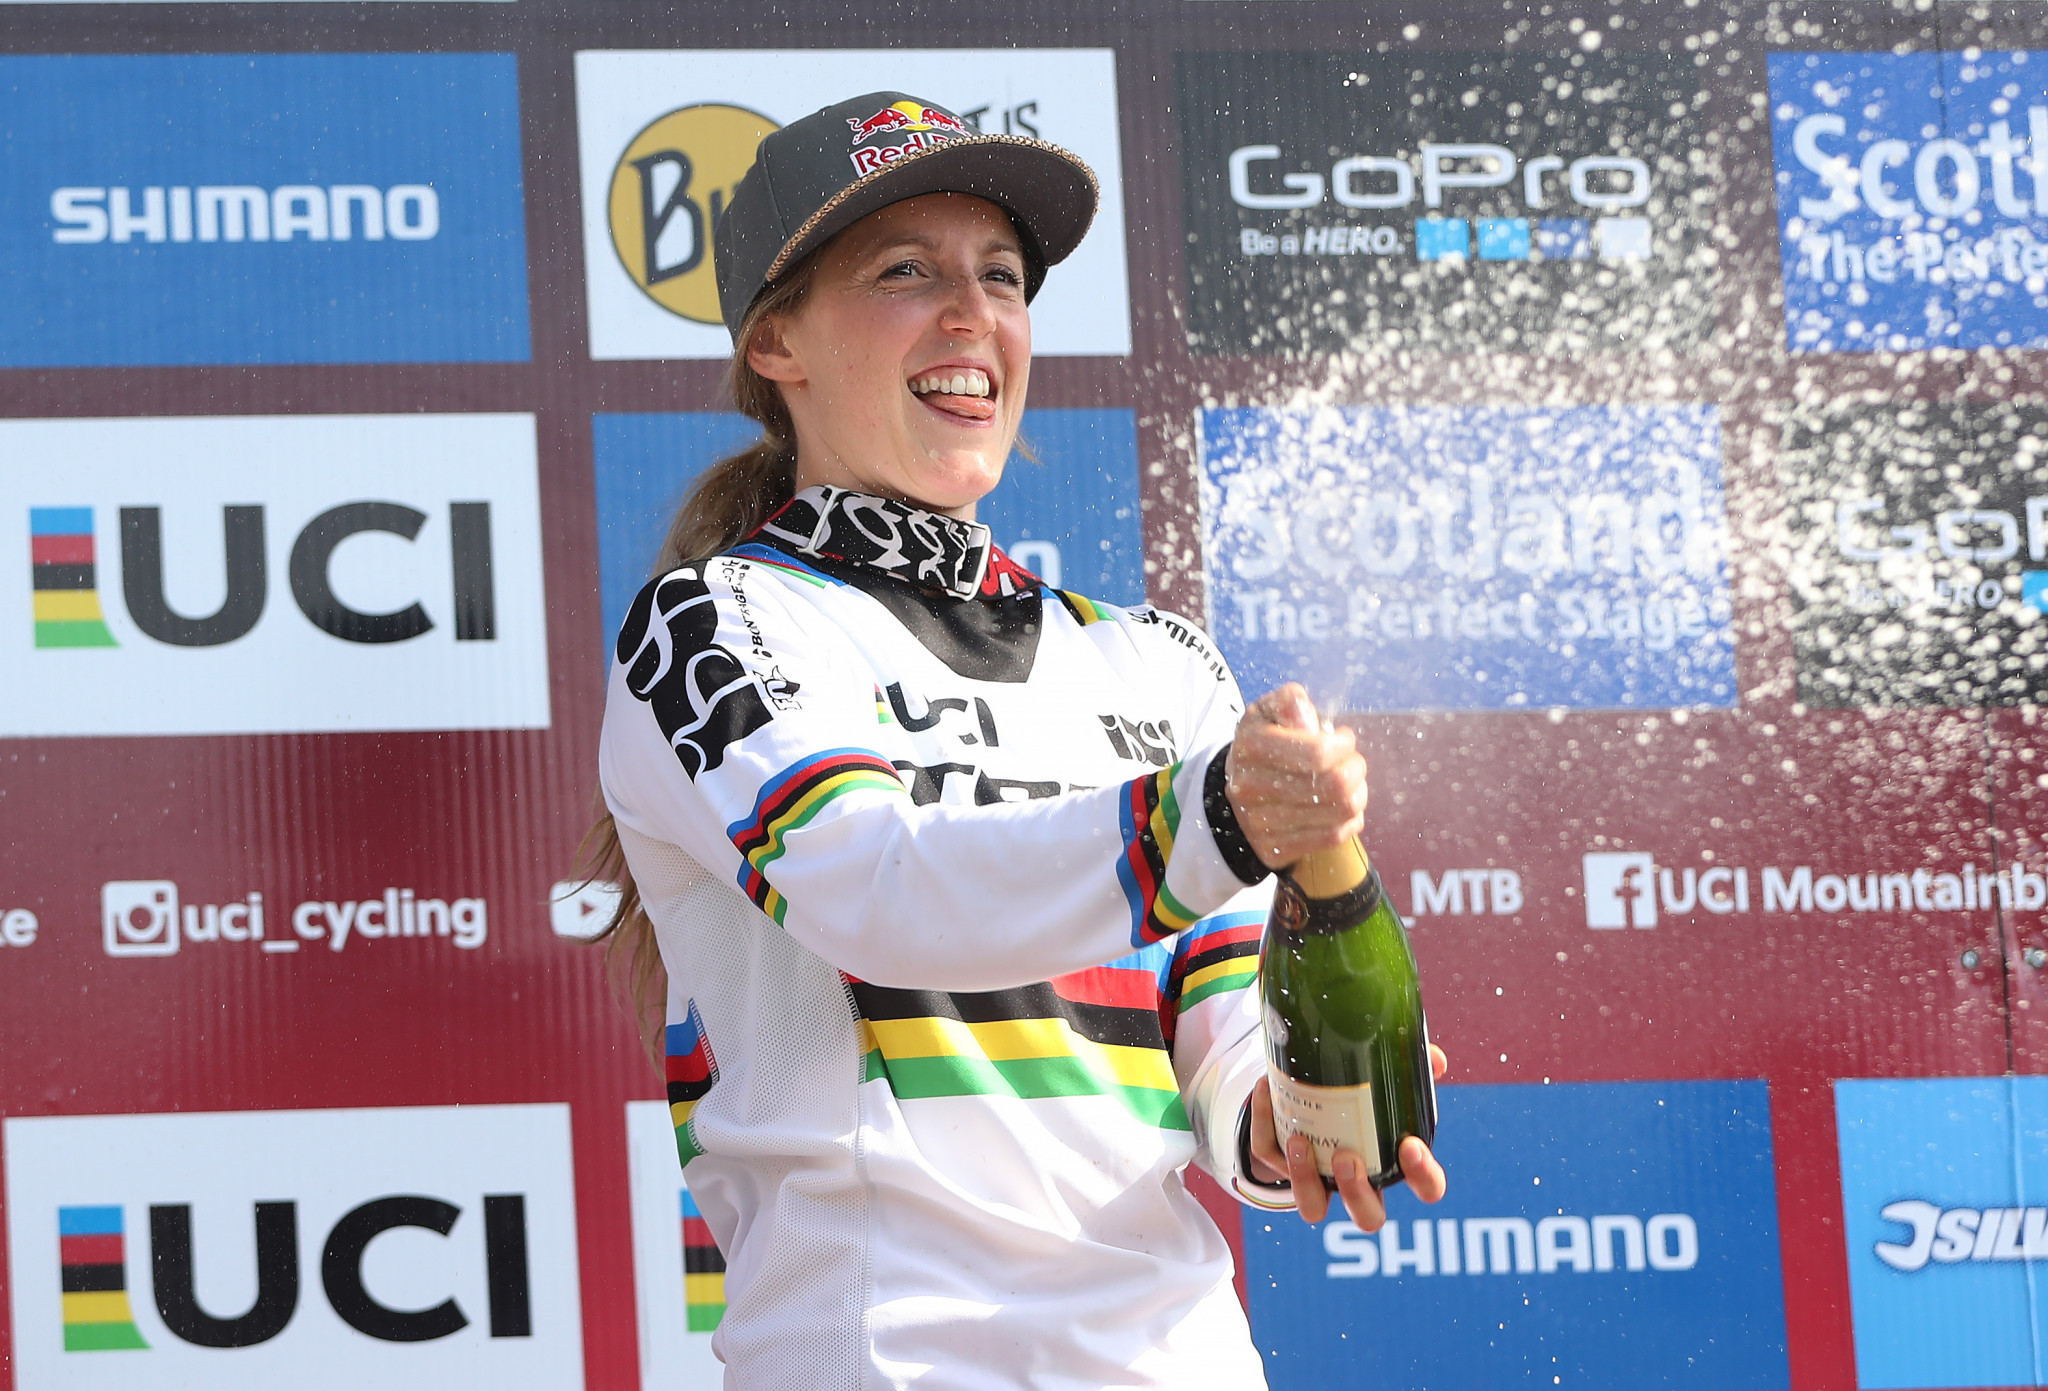 Atherton wins fifth downhill gold at Mountain Bike World Championship as Bruni defends men's title